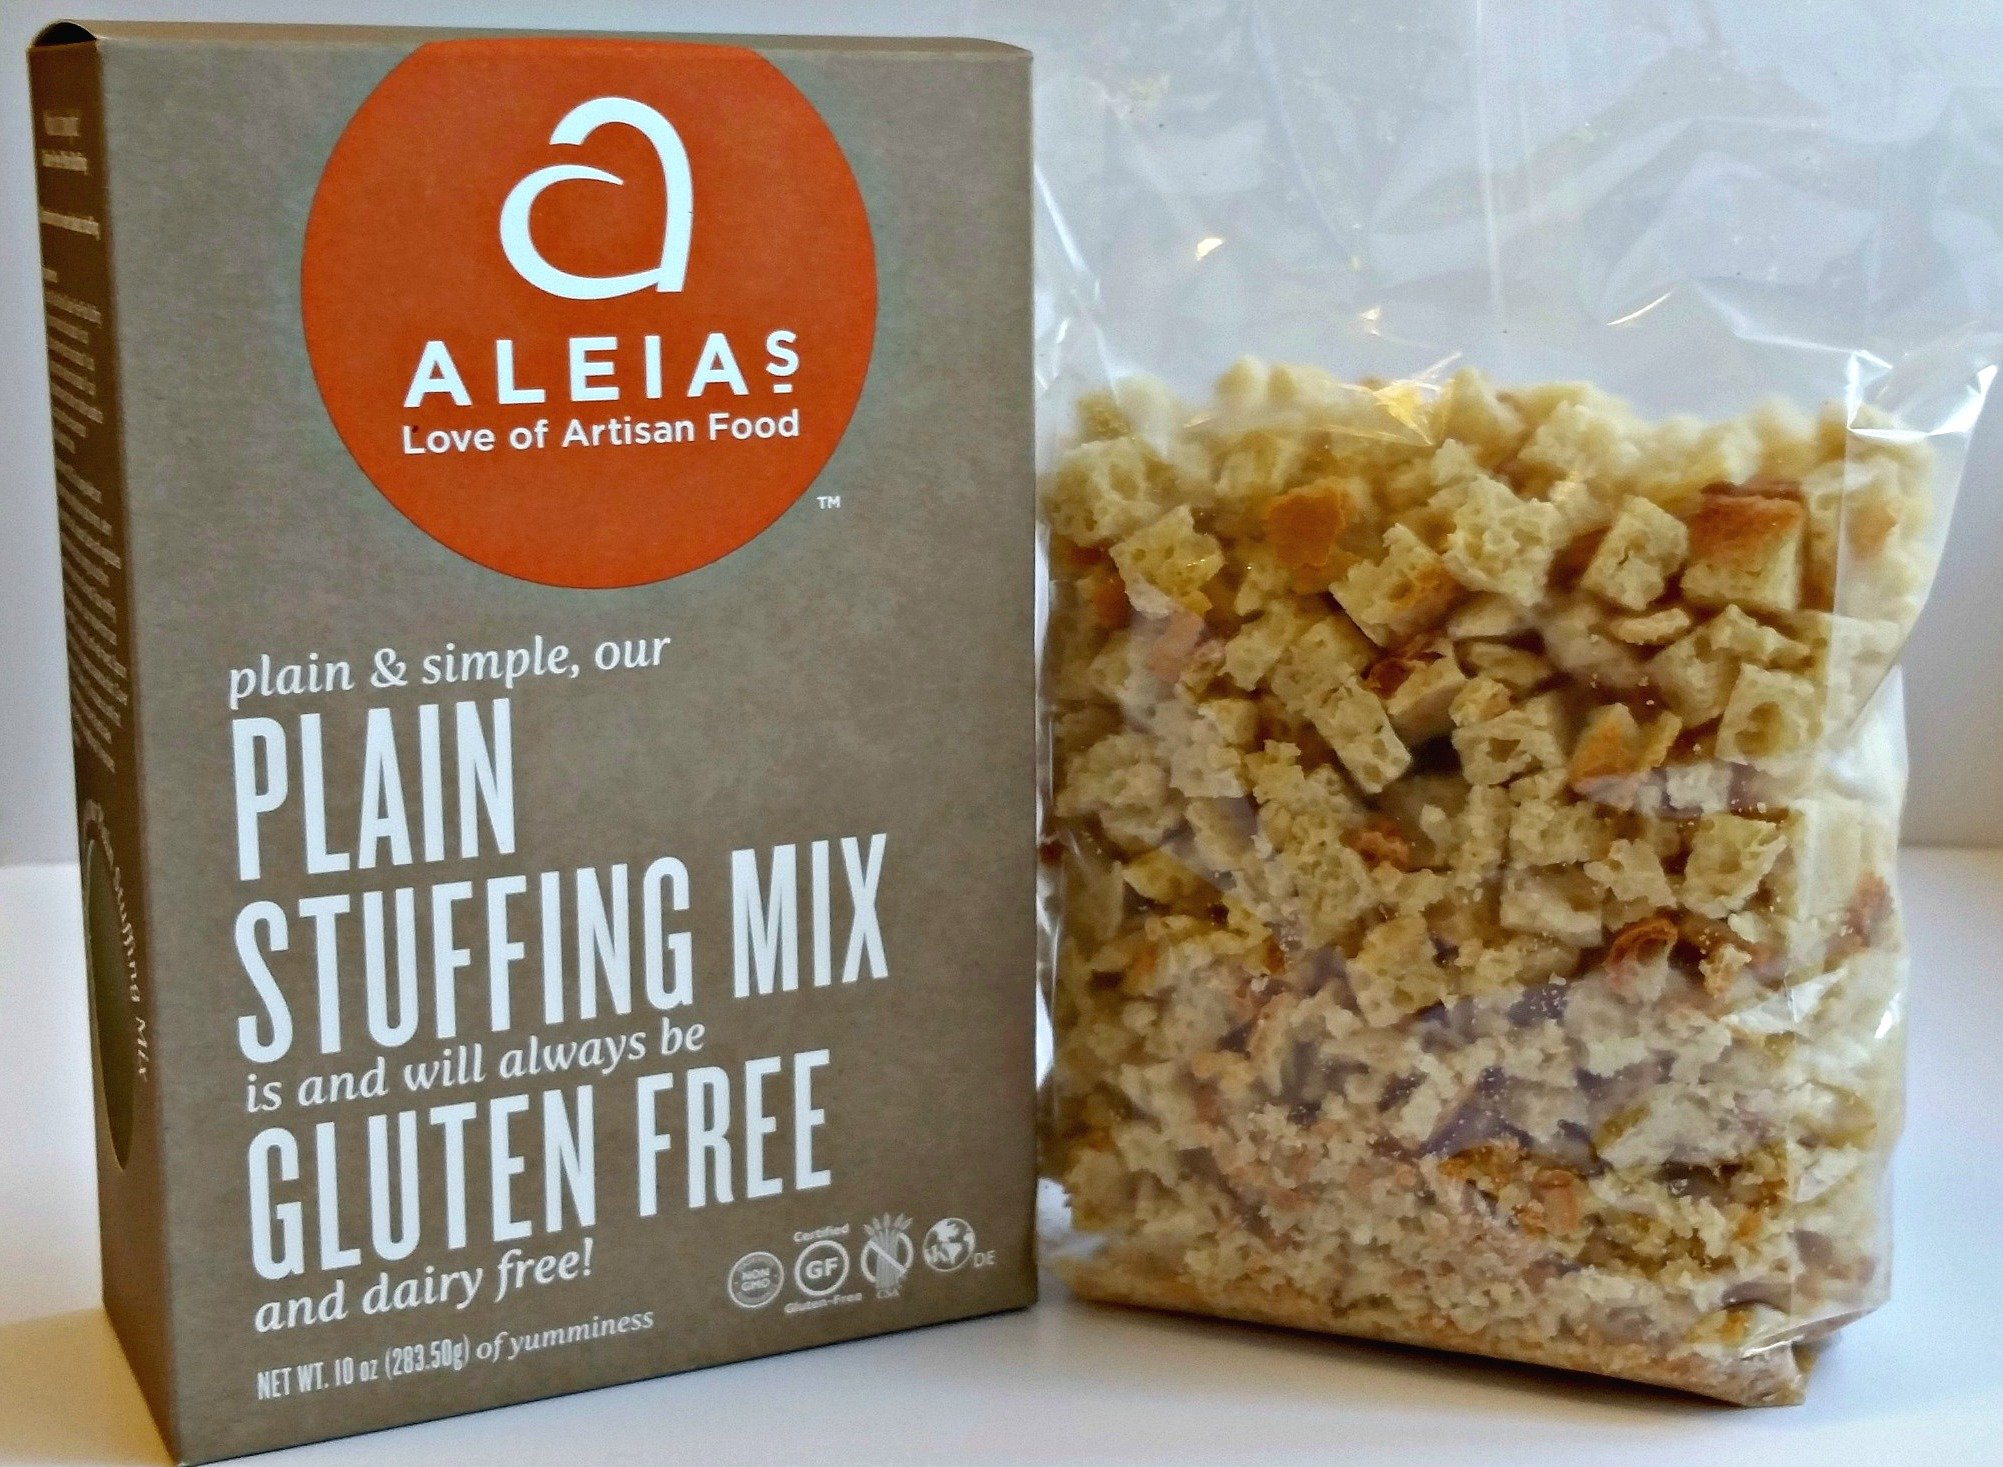 Aleia's Gluten Free Plain Stuffing Mix - Pack of 5 by Aleias